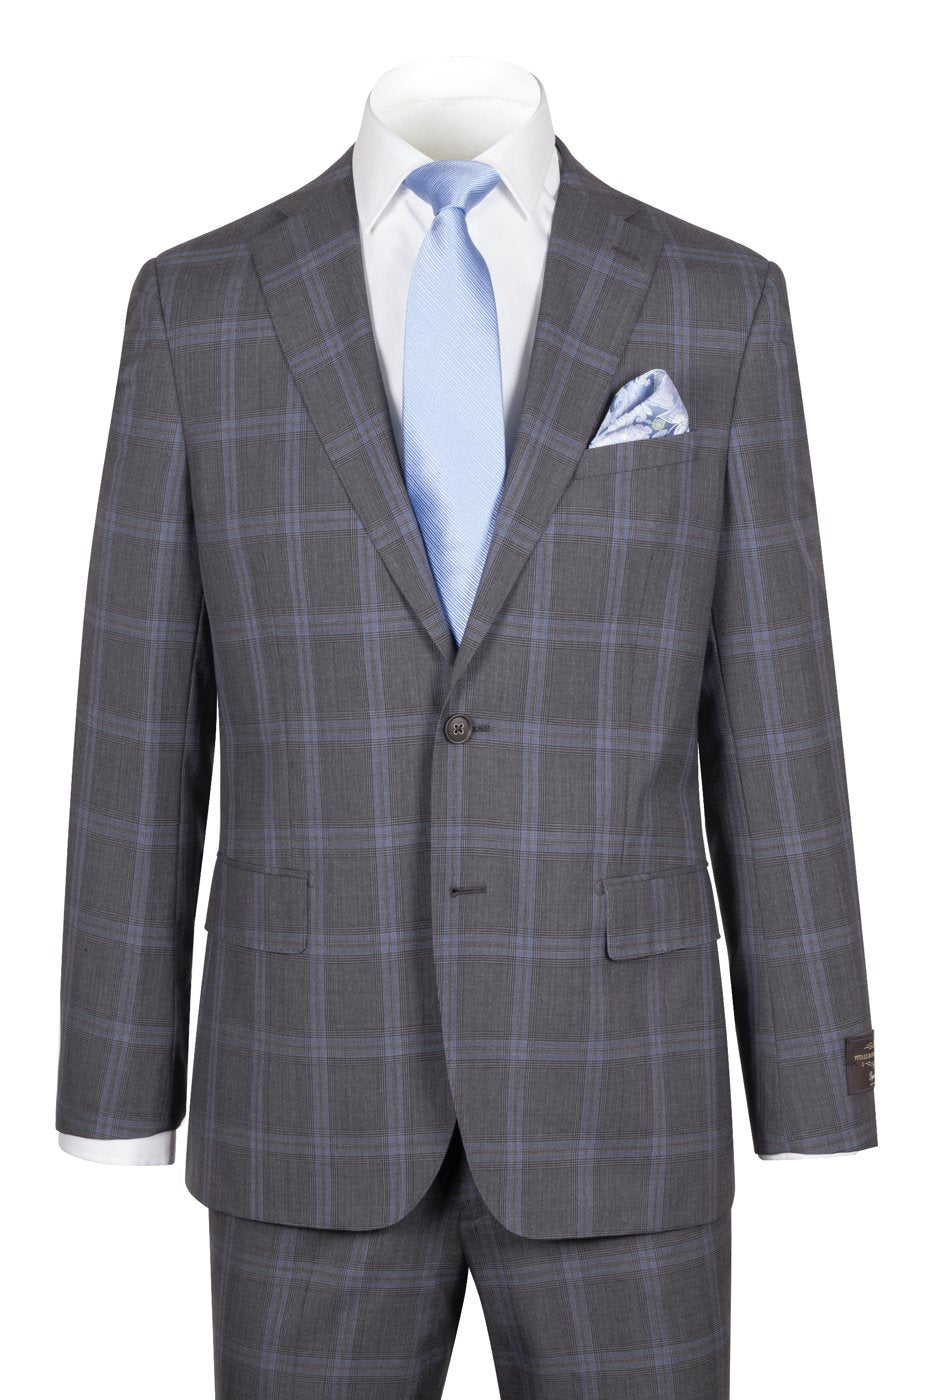 Dolcetto Modern Fit,Gray with Light blue windowpane, Pure Wool Suit by VITALE BARBERIS CANONICO Cloth by Canaletto Menswear CV40.9125/2